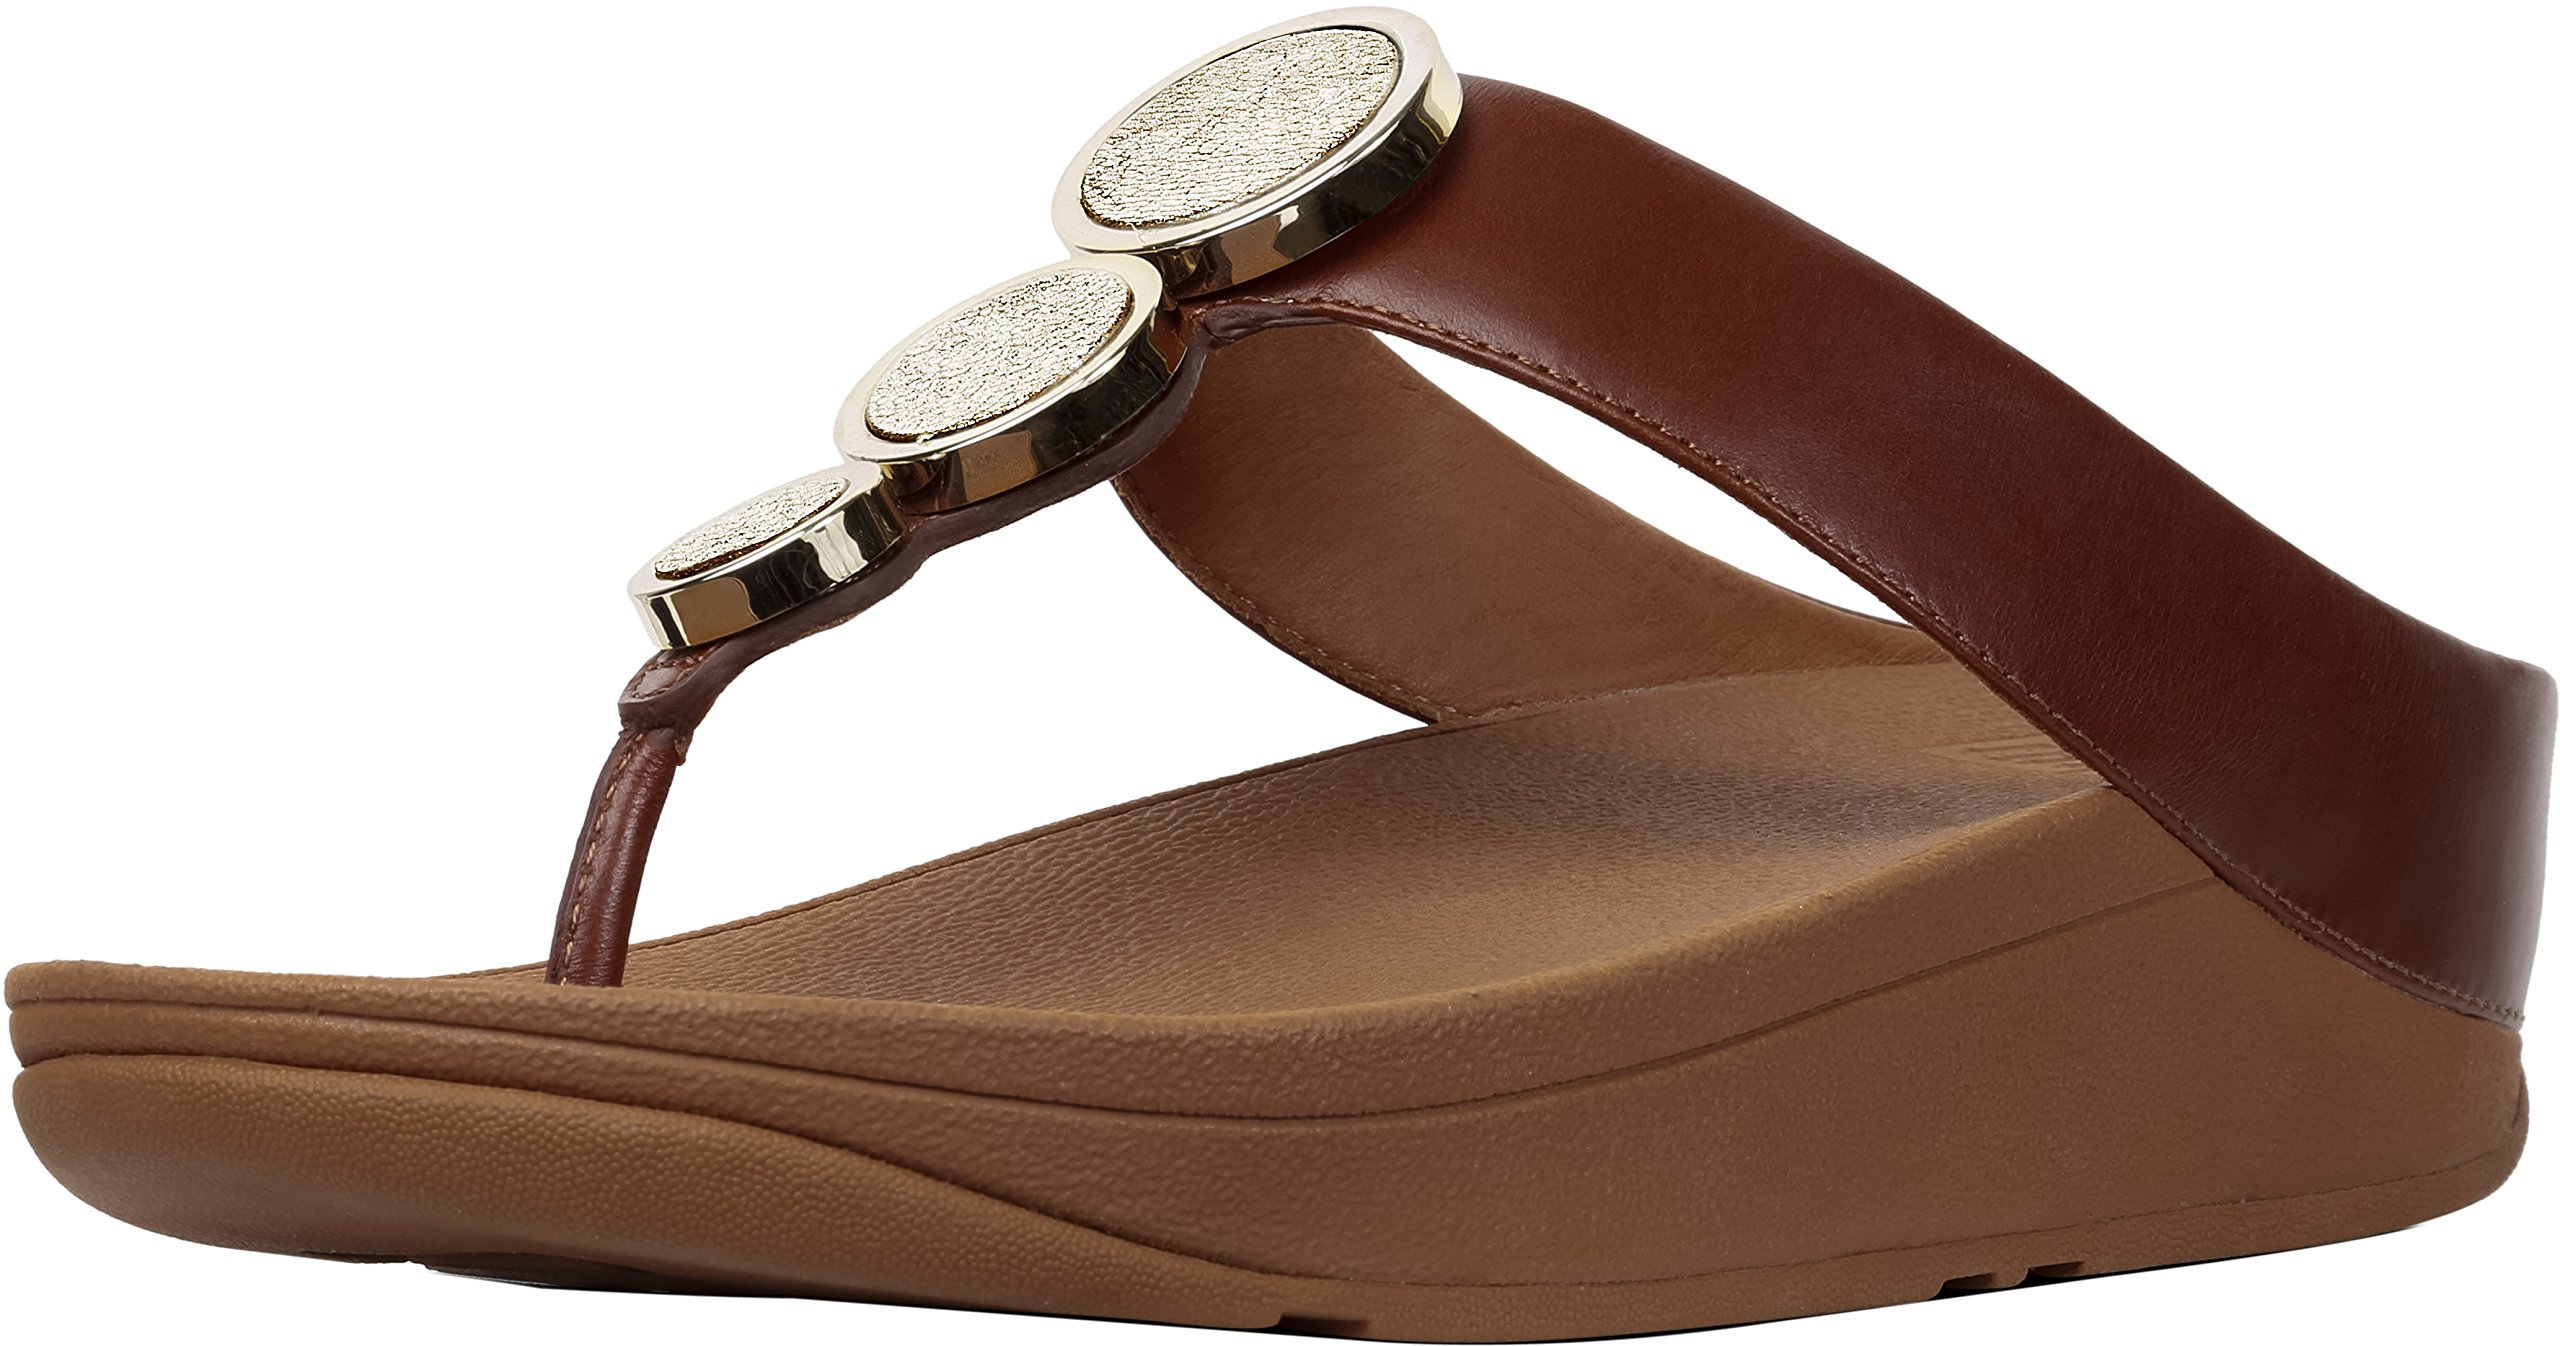 FitFlop New Women's Halo Thong Sandal Cognac 8